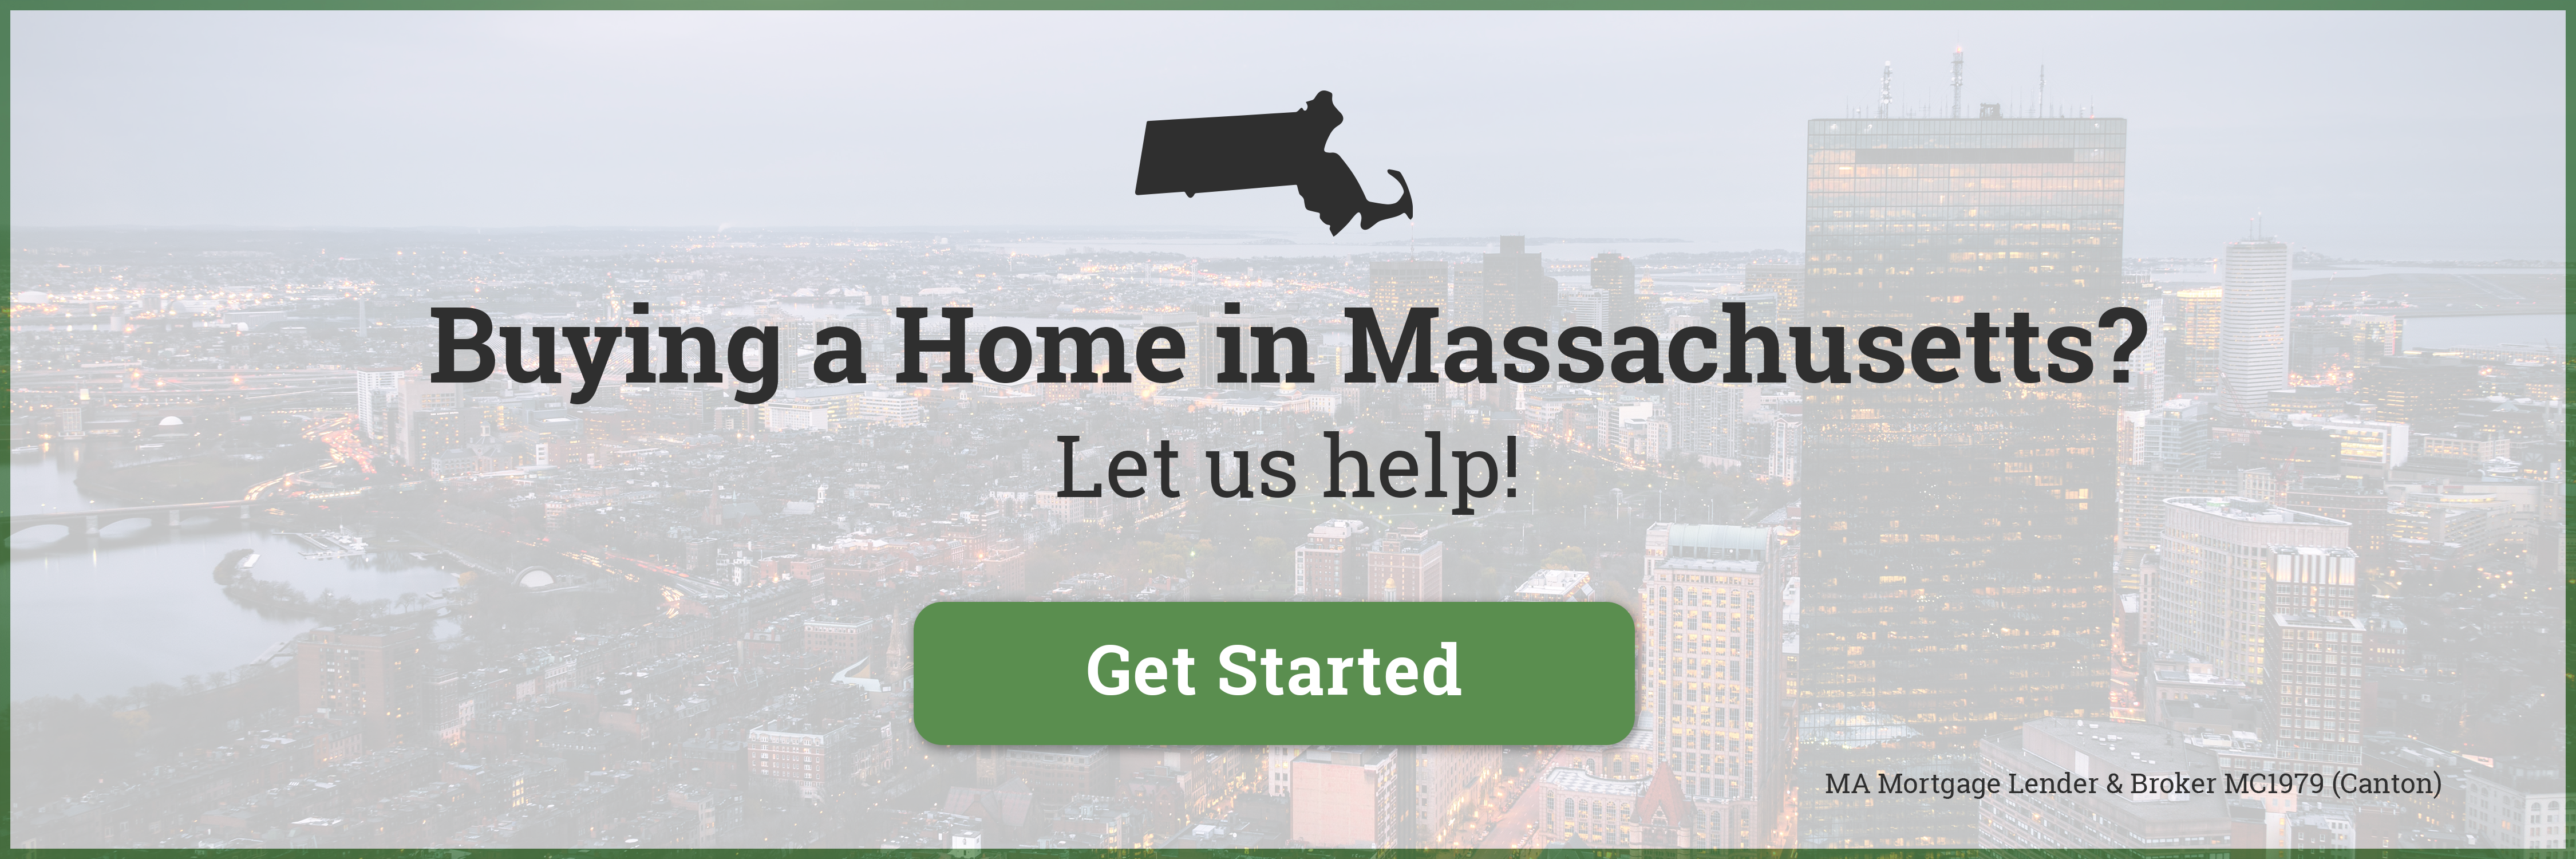 Buying a Home in Massachusetts?